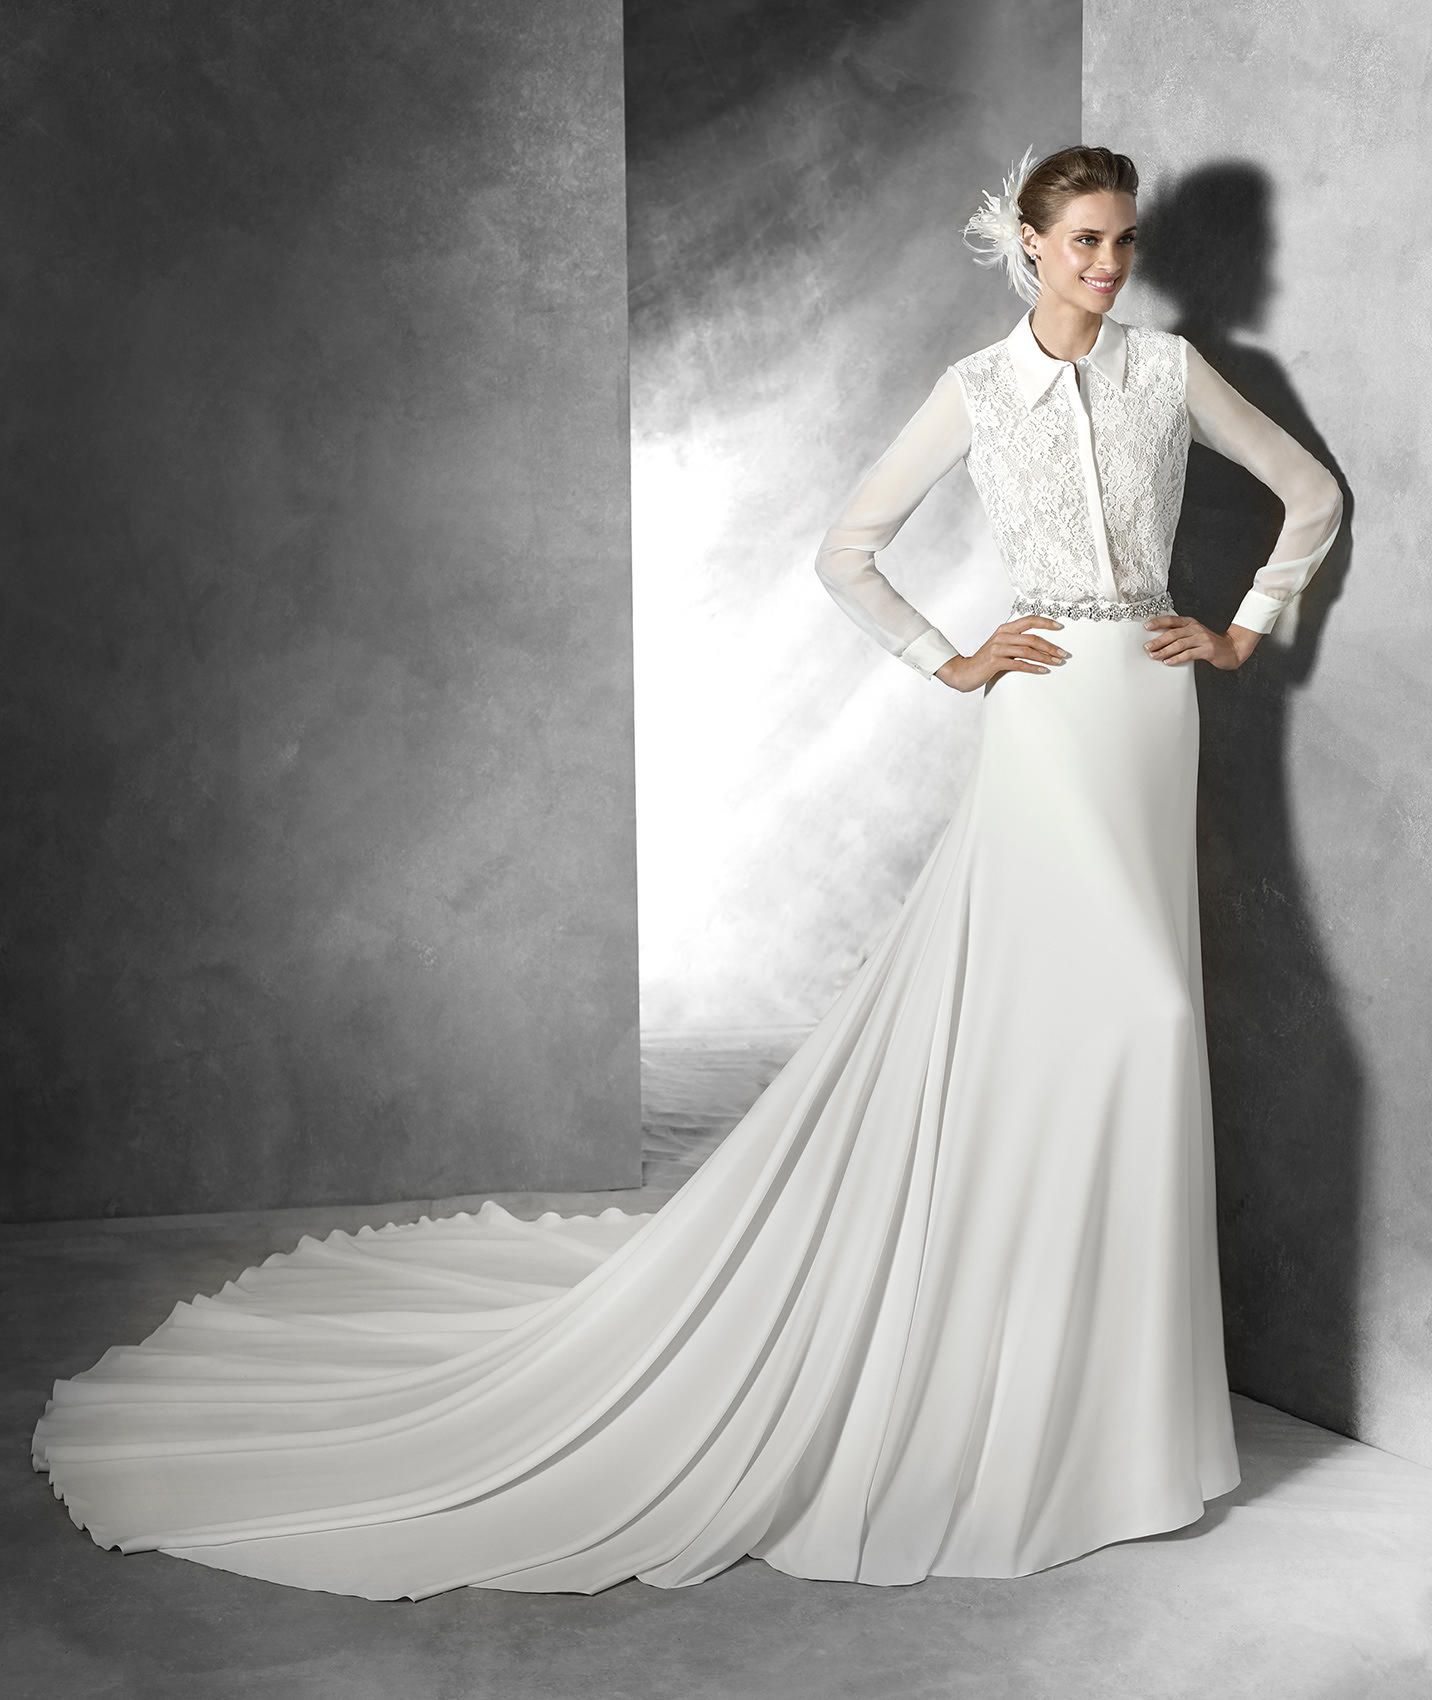 Cheap Gowns Robes Buy Quality For Fat Women Directly From China Gown Shoes Suppliers Welcome To Vnaix Bridals Professional Wedding Dress Manufacture